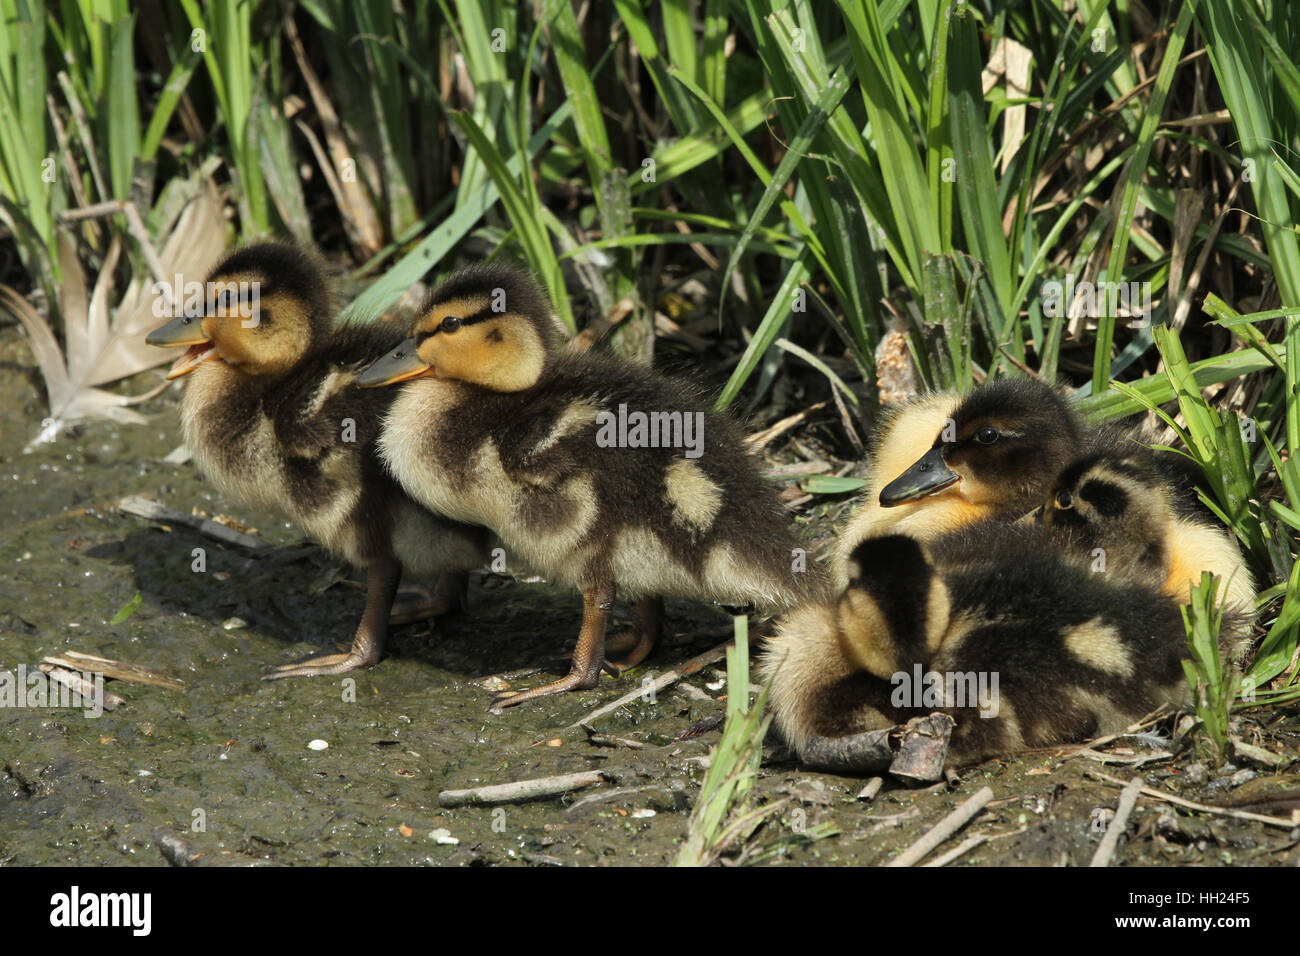 A group of Mallard Ducklings (Anas platyrhynchos) resting on the lakes edge. - Stock Image